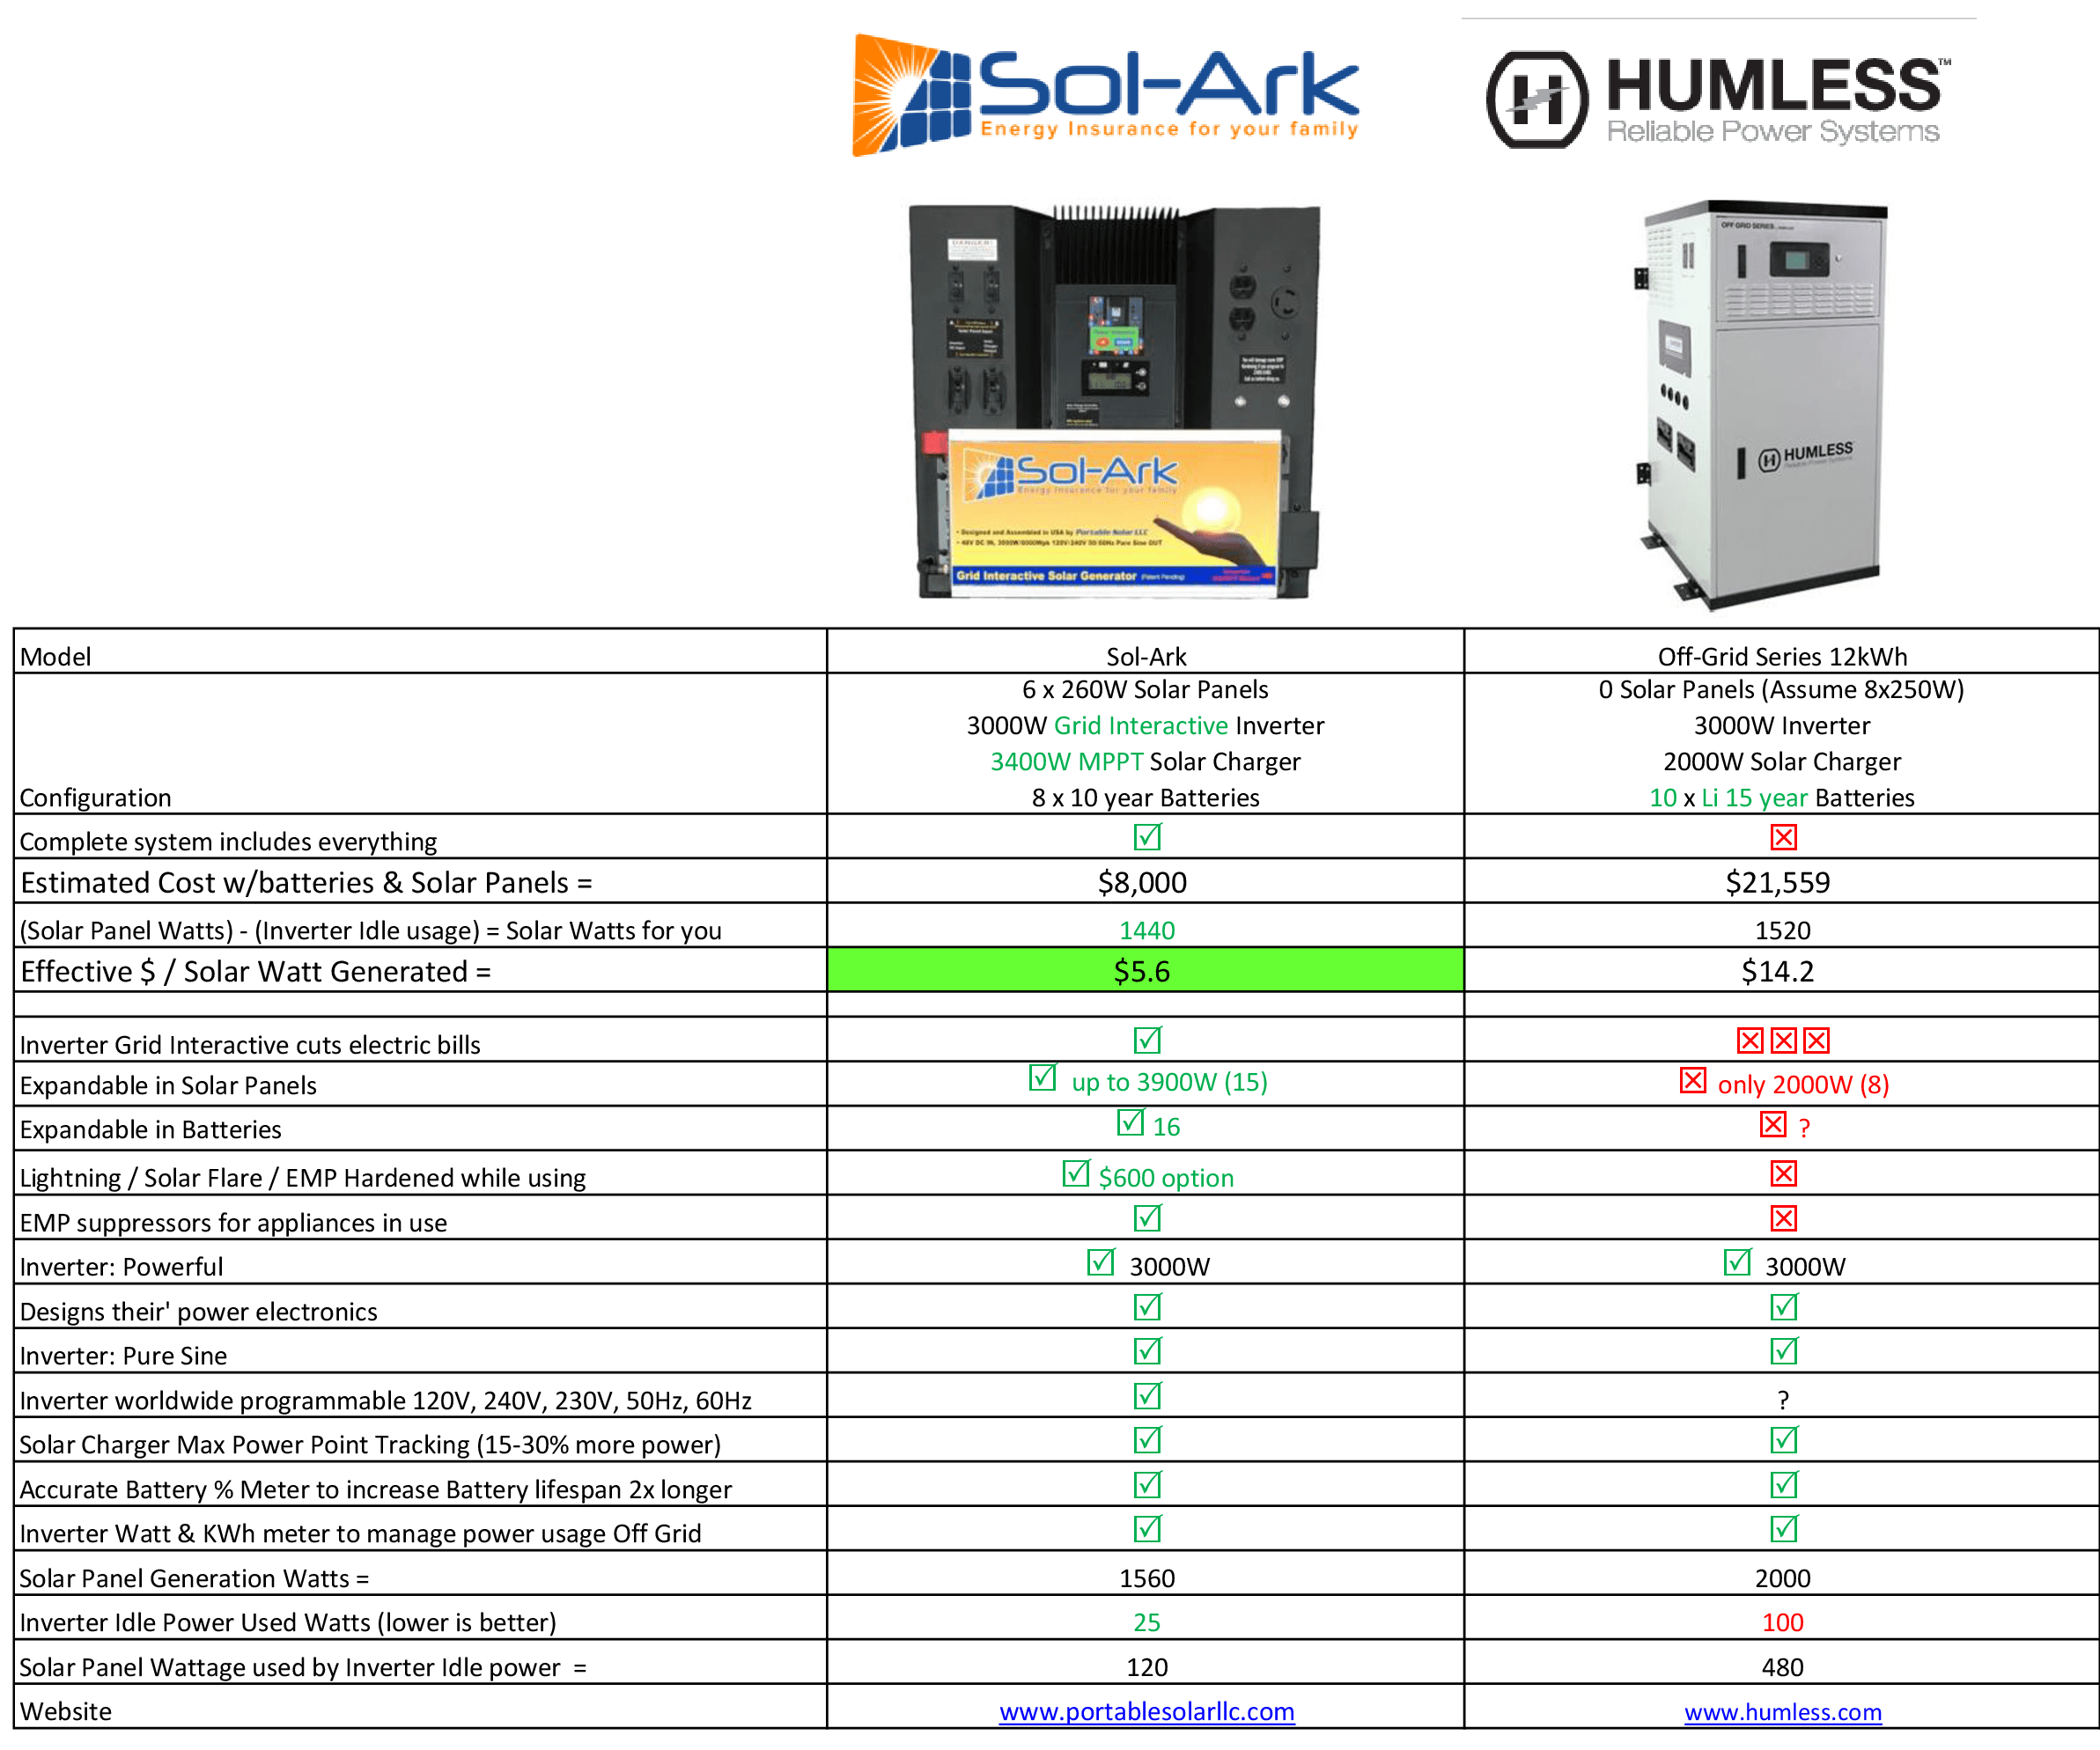 Compare Sol-Ark to Humless Reliable Power Systems